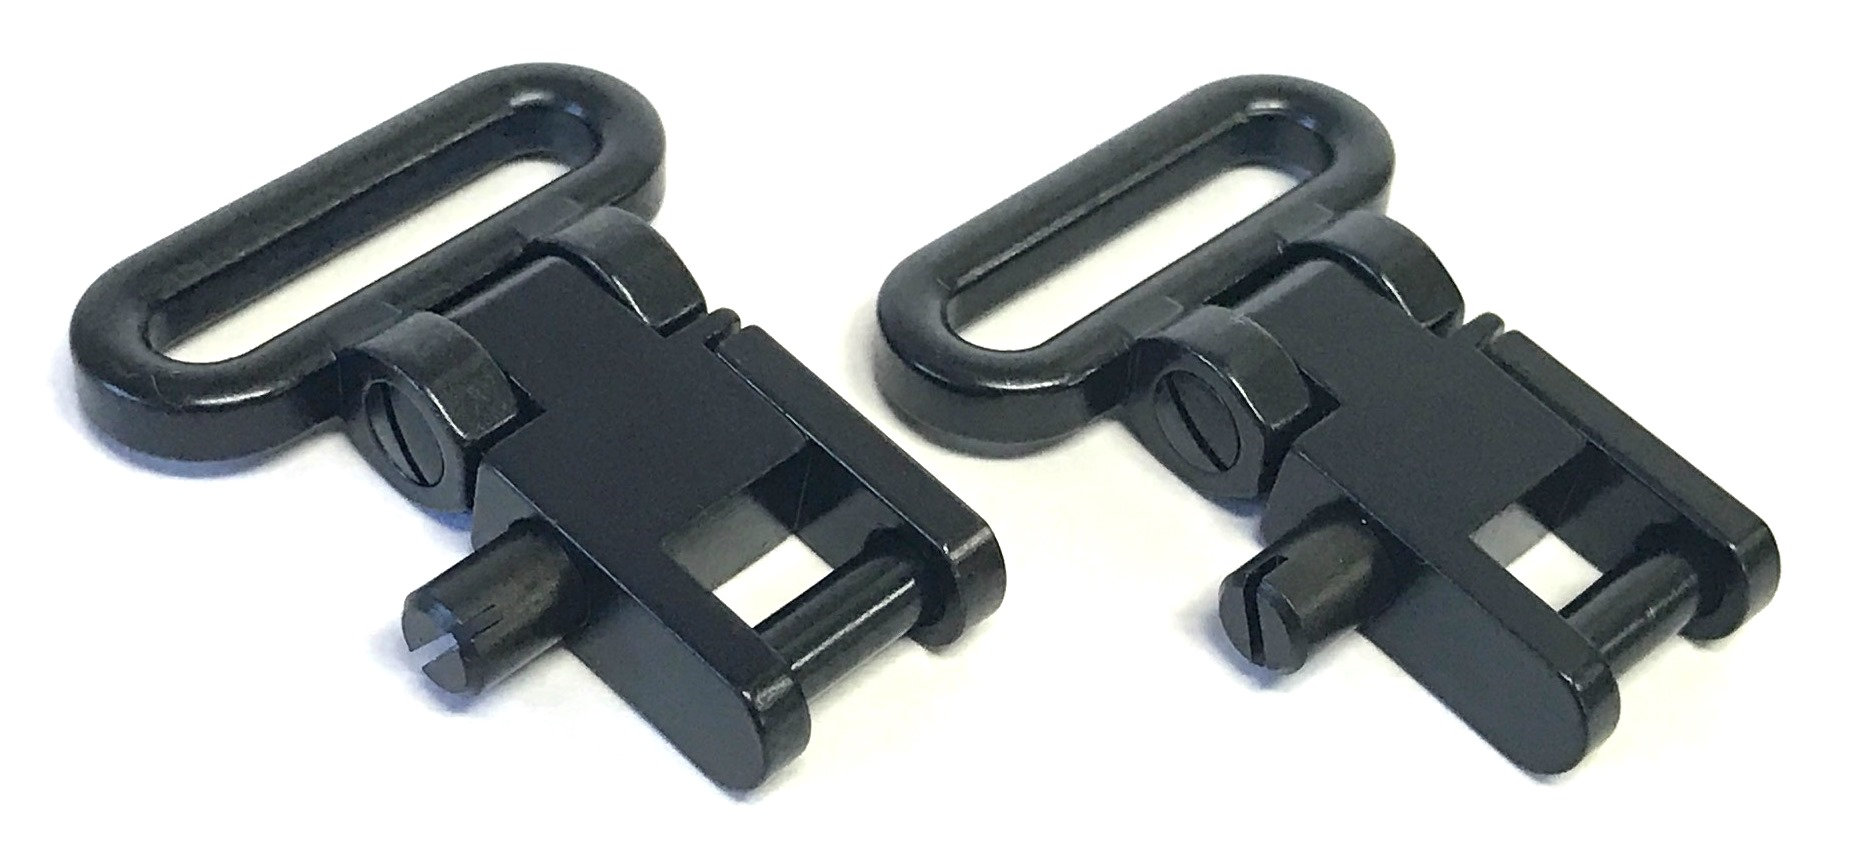 NECG Quick-Detachable Sling Swivel Set (2) - R-308-2 / R-316-2